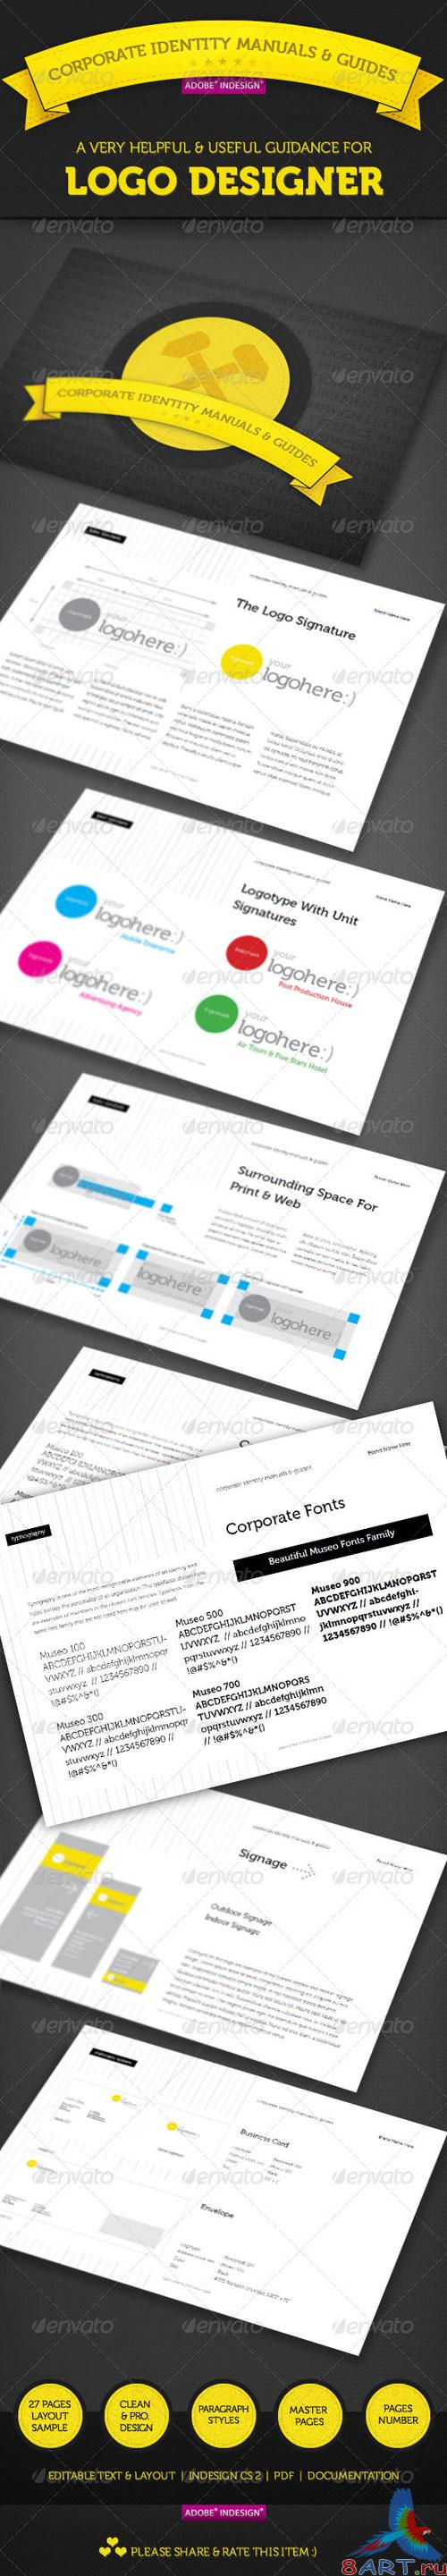 GraphicRiver - Corporate Identity Manuals and Guides Template